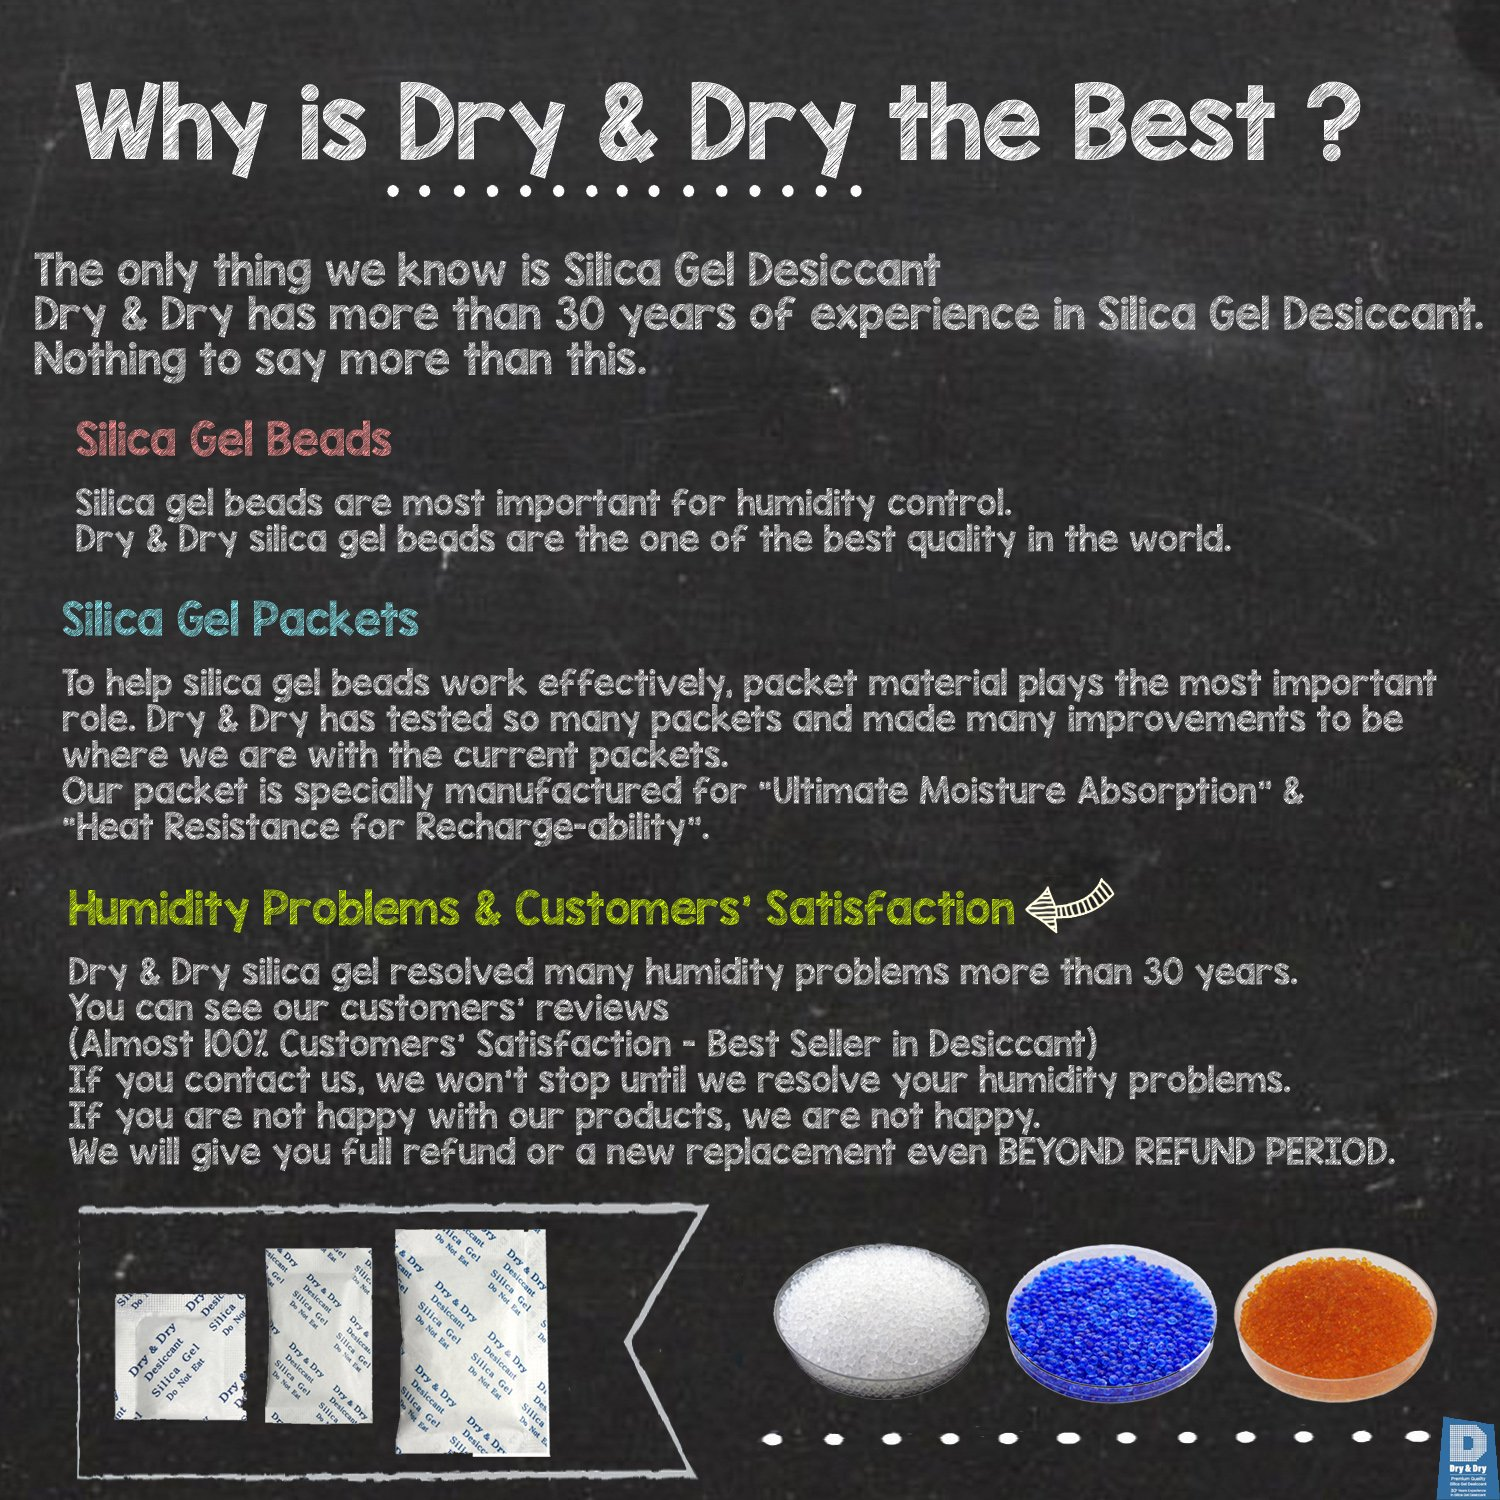 Dry & Dry 2 Gallon Blue Premium Desiccant Indicating Silica Gel Beads(Industry Standard 2-4 mm) - 15 LBS Reusable by Dry & Dry (Image #2)